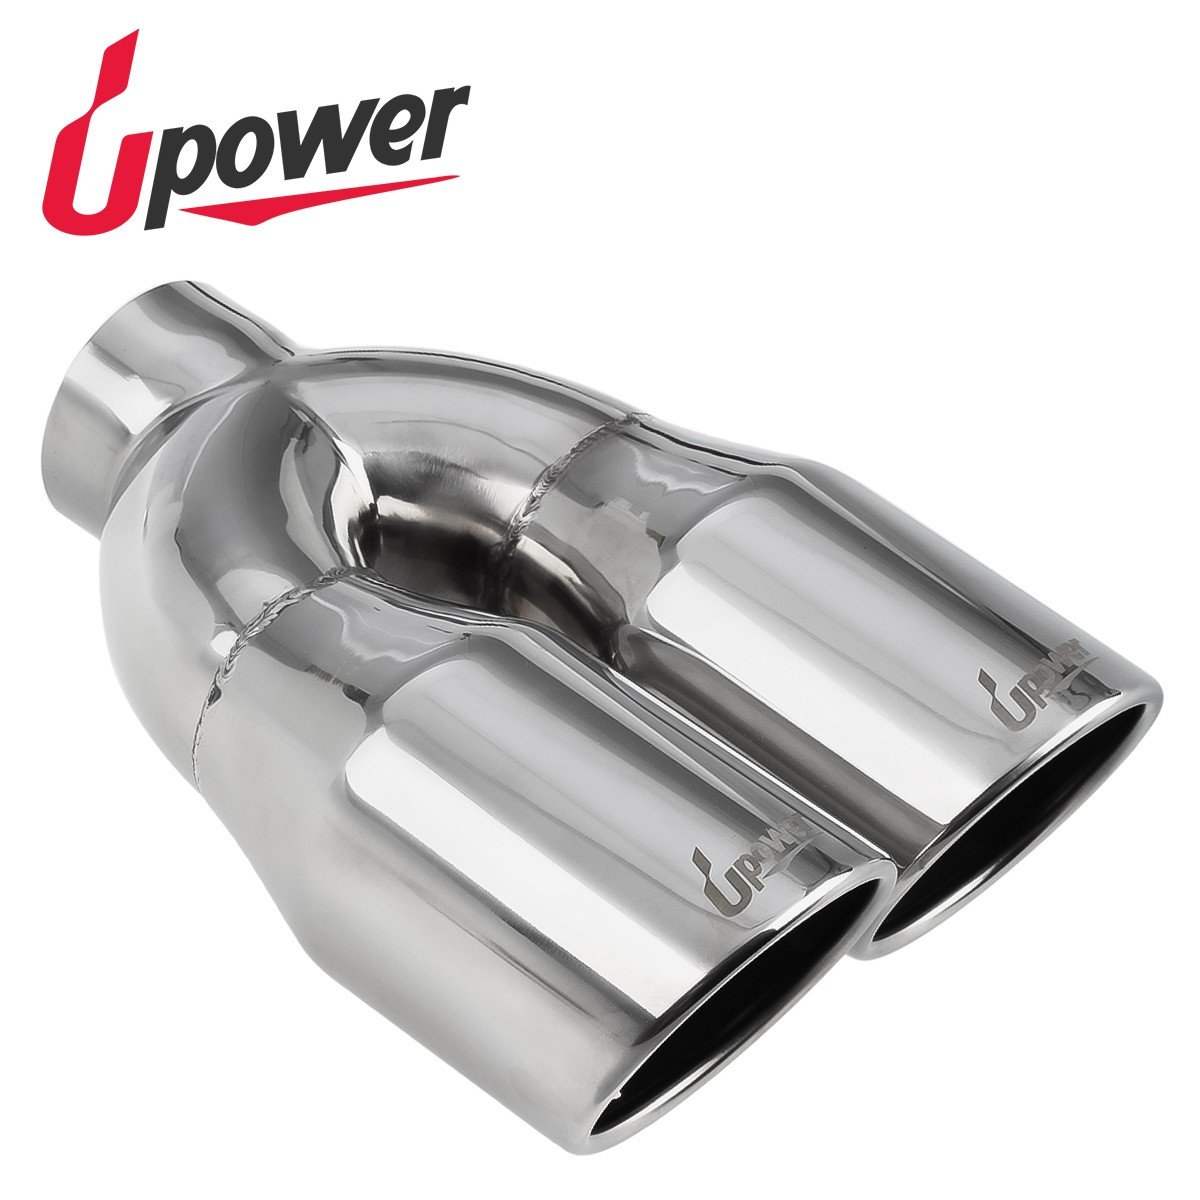 Upower Car Truck Dual 2.5'' to 3.5'' Exhaust Tips 10'' Long Stainless Steel Polished Angle Cut Tailpipe for 2.50'' Tubing